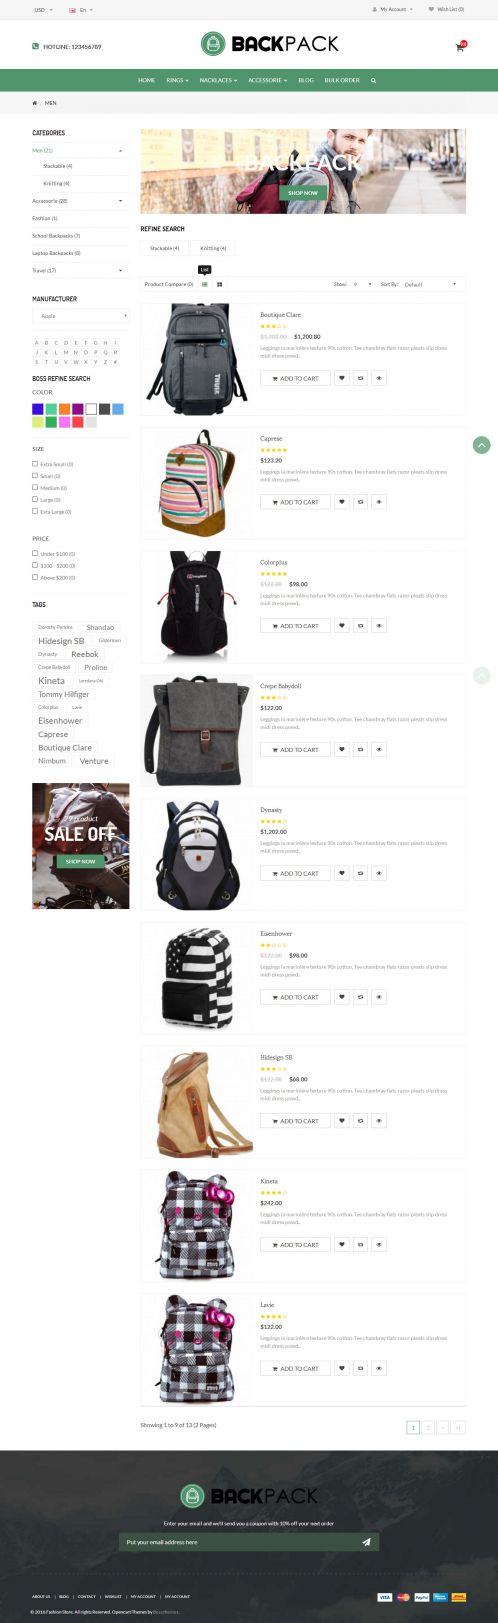 Bossthemes BackPack - Category List